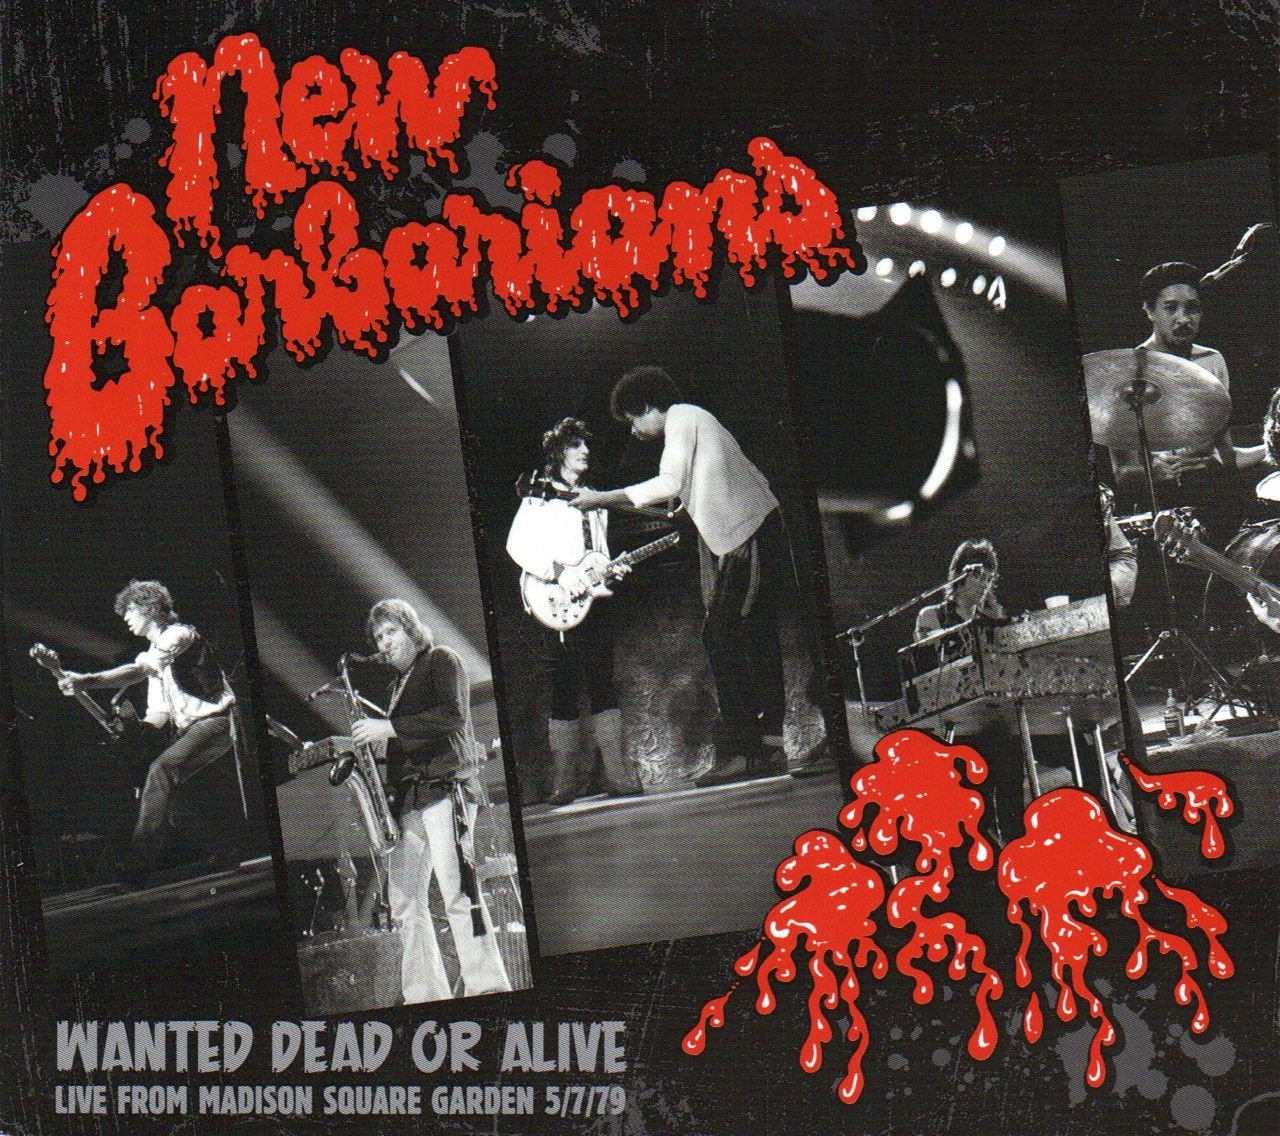 Silver Train New Barbarians Wanted Dead Or Alive Live From Madison Square Garden 5 7 79